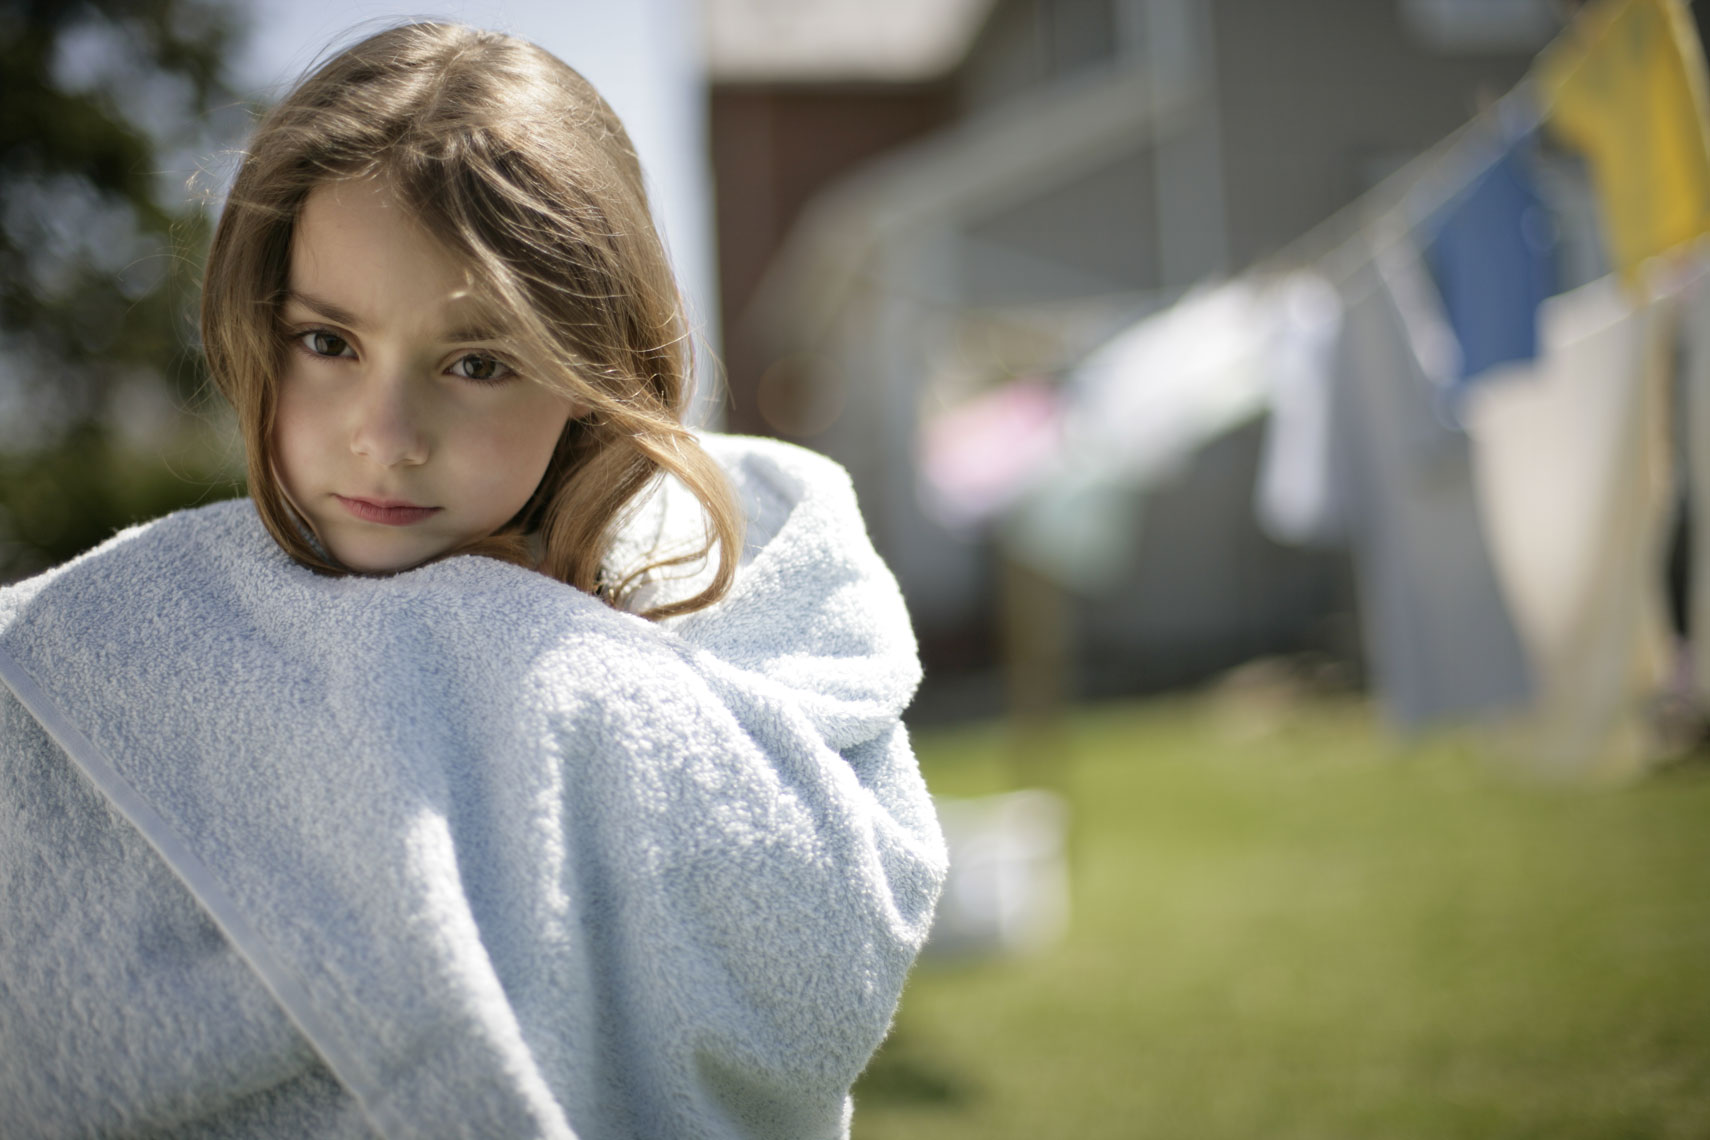 Pharmaceutical advertising portrait of a young girl wrapped in a towel outside